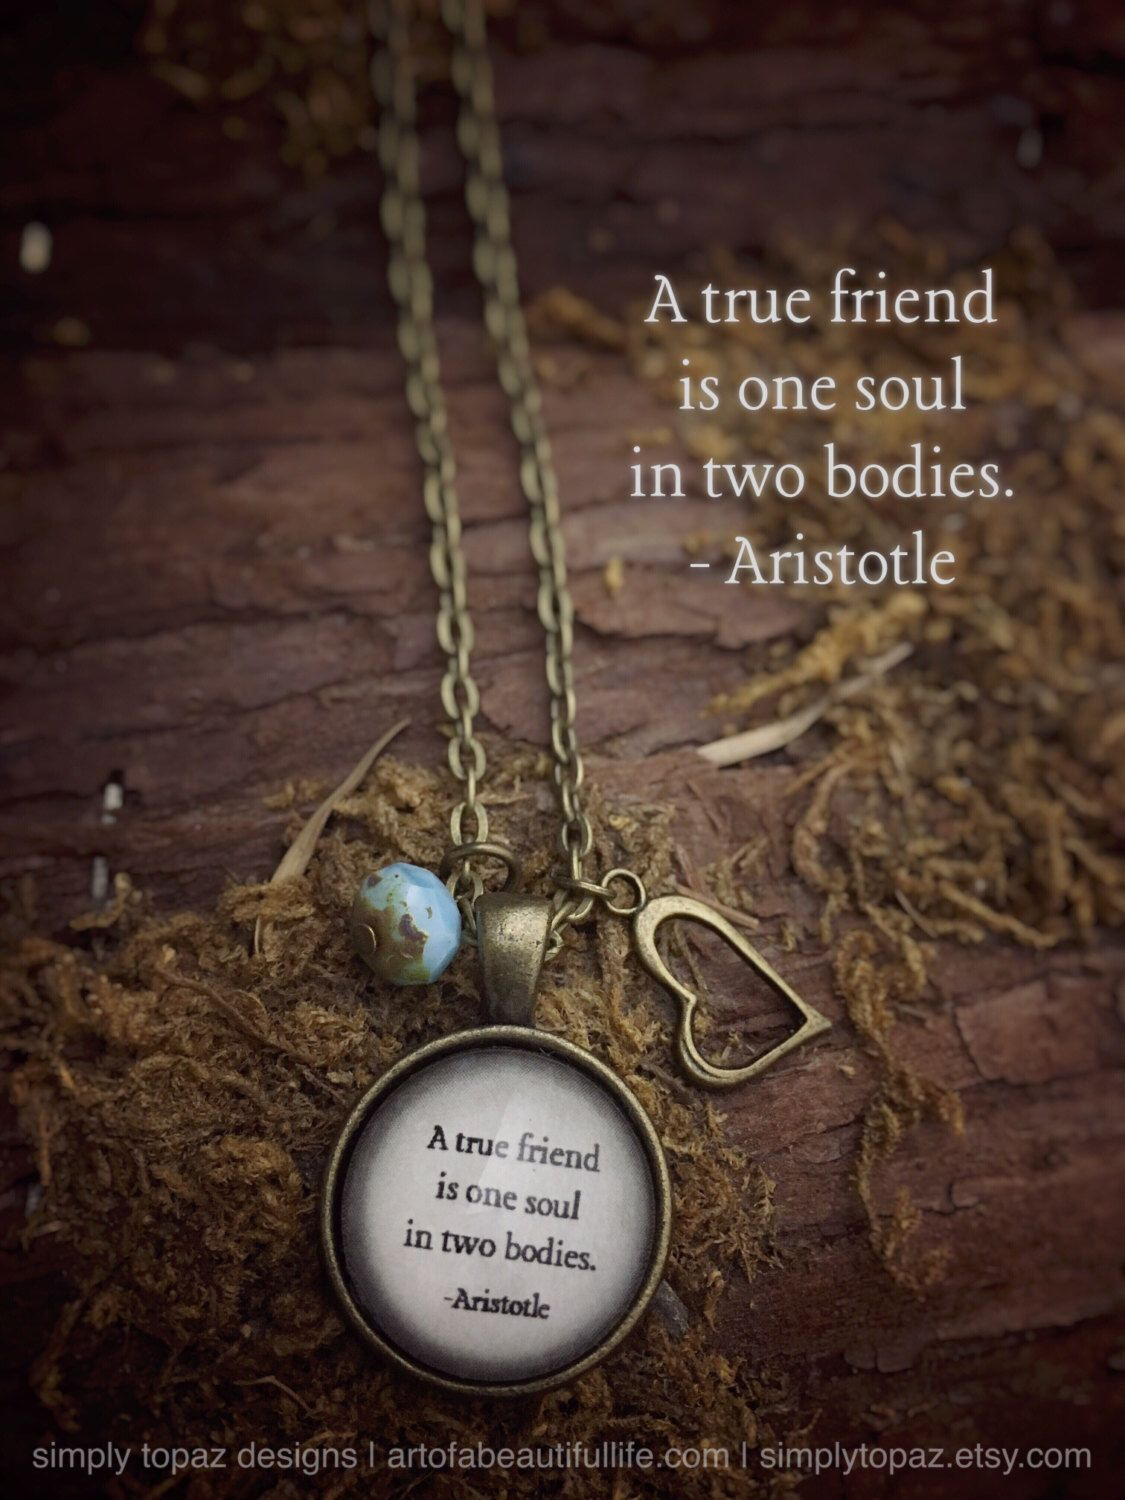 Best Friends Jewelry Best Friends Necklace Friendship Jewelry One Soul In Two Bodies Quote Jewelry G Best Friend Jewelry Friend Necklaces Best Friend Gifts